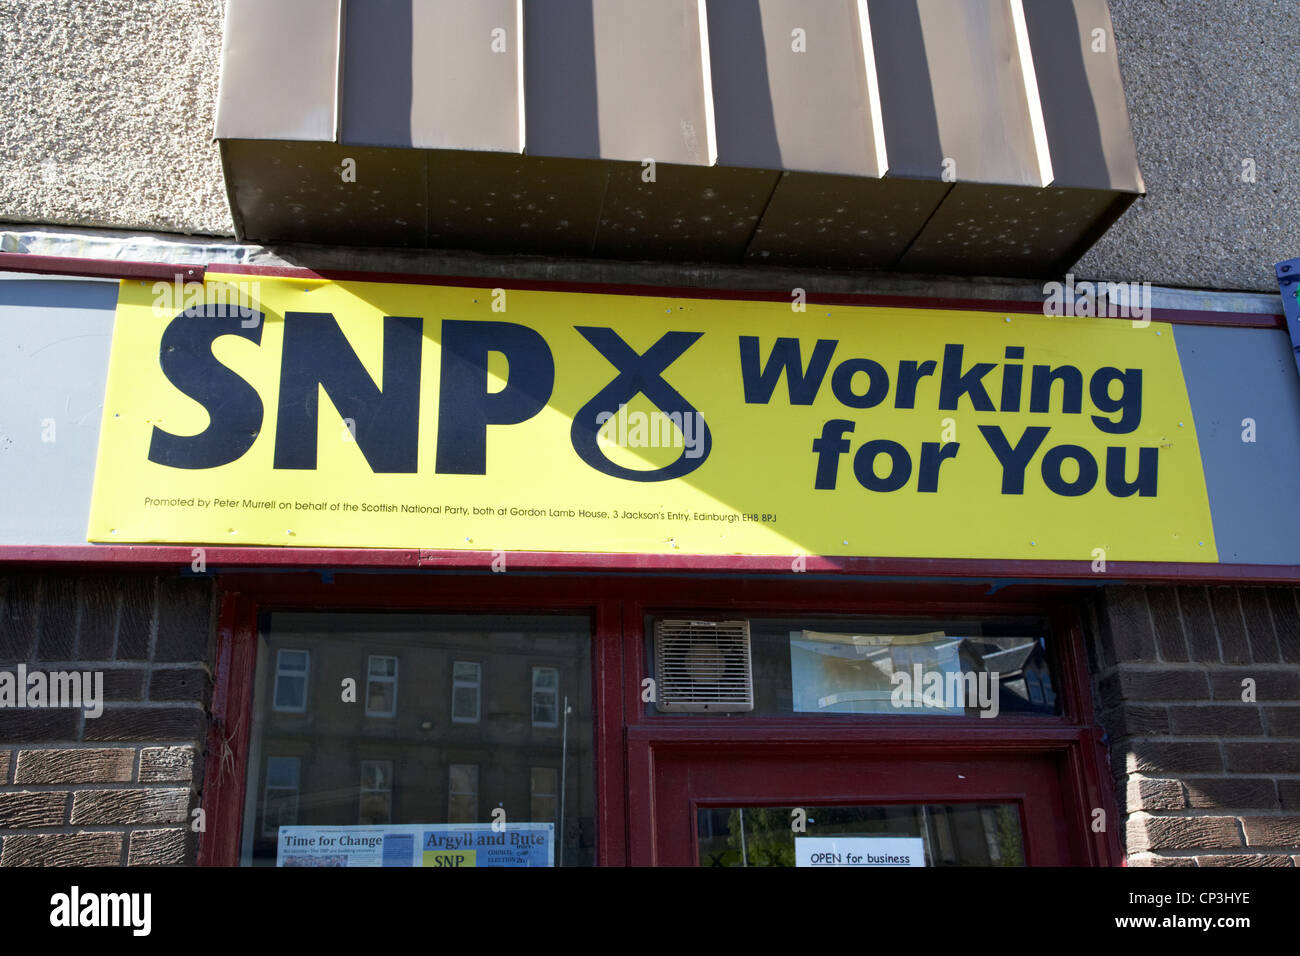 scottish national party constituency office in scotland - Stock Image